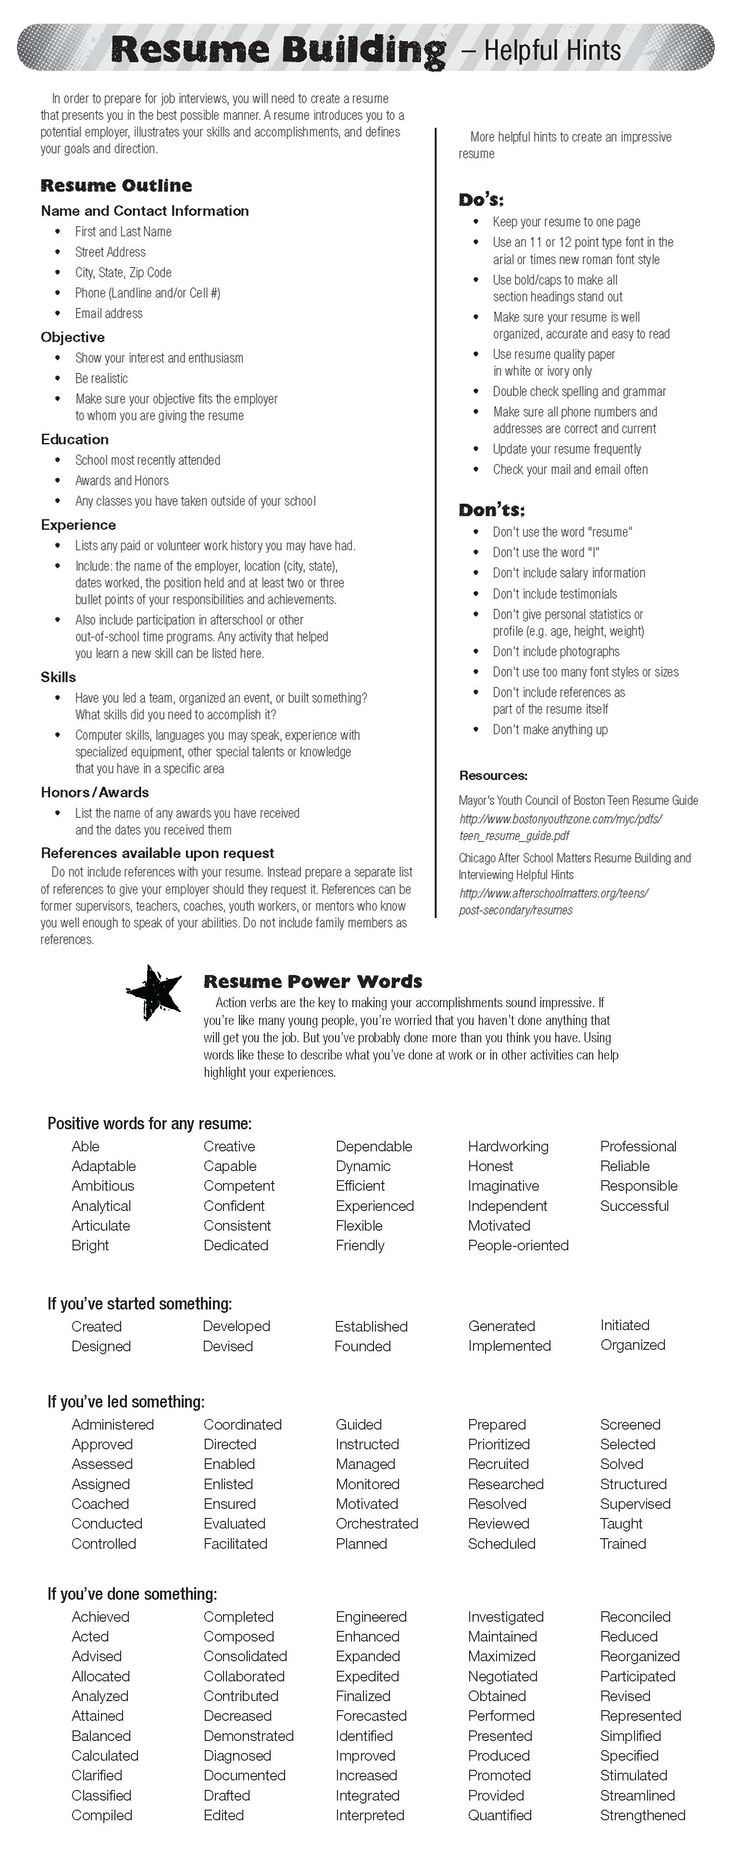 Opposenewapstandardsus  Pleasing  Ideas About Resume On Pinterest  Cv Format Resume Cv And  With Handsome  Ideas About Resume On Pinterest  Cv Format Resume Cv And Resume Templates With Delectable Resume Rabbit Reviews Also Office Manager Job Description For Resume In Addition Social Worker Resume Sample And Accounting Resume Samples As Well As Best Resume Service Additionally Waitress Job Description Resume From Pinterestcom With Opposenewapstandardsus  Handsome  Ideas About Resume On Pinterest  Cv Format Resume Cv And  With Delectable  Ideas About Resume On Pinterest  Cv Format Resume Cv And Resume Templates And Pleasing Resume Rabbit Reviews Also Office Manager Job Description For Resume In Addition Social Worker Resume Sample From Pinterestcom